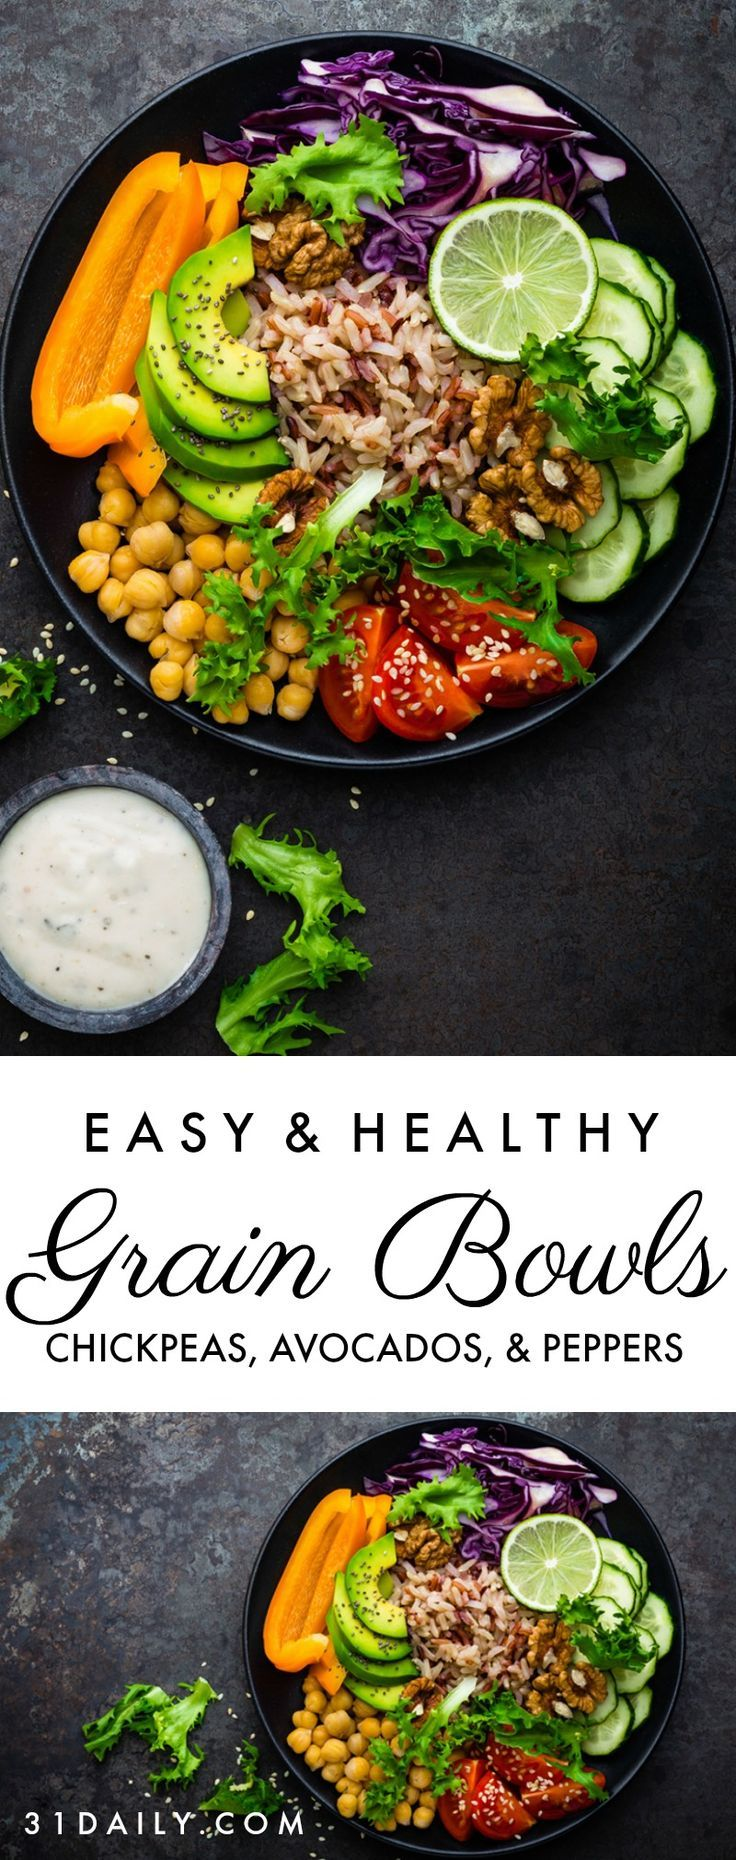 Chickpea Grain Bowls With Avocado Peppers And Red Cabbage